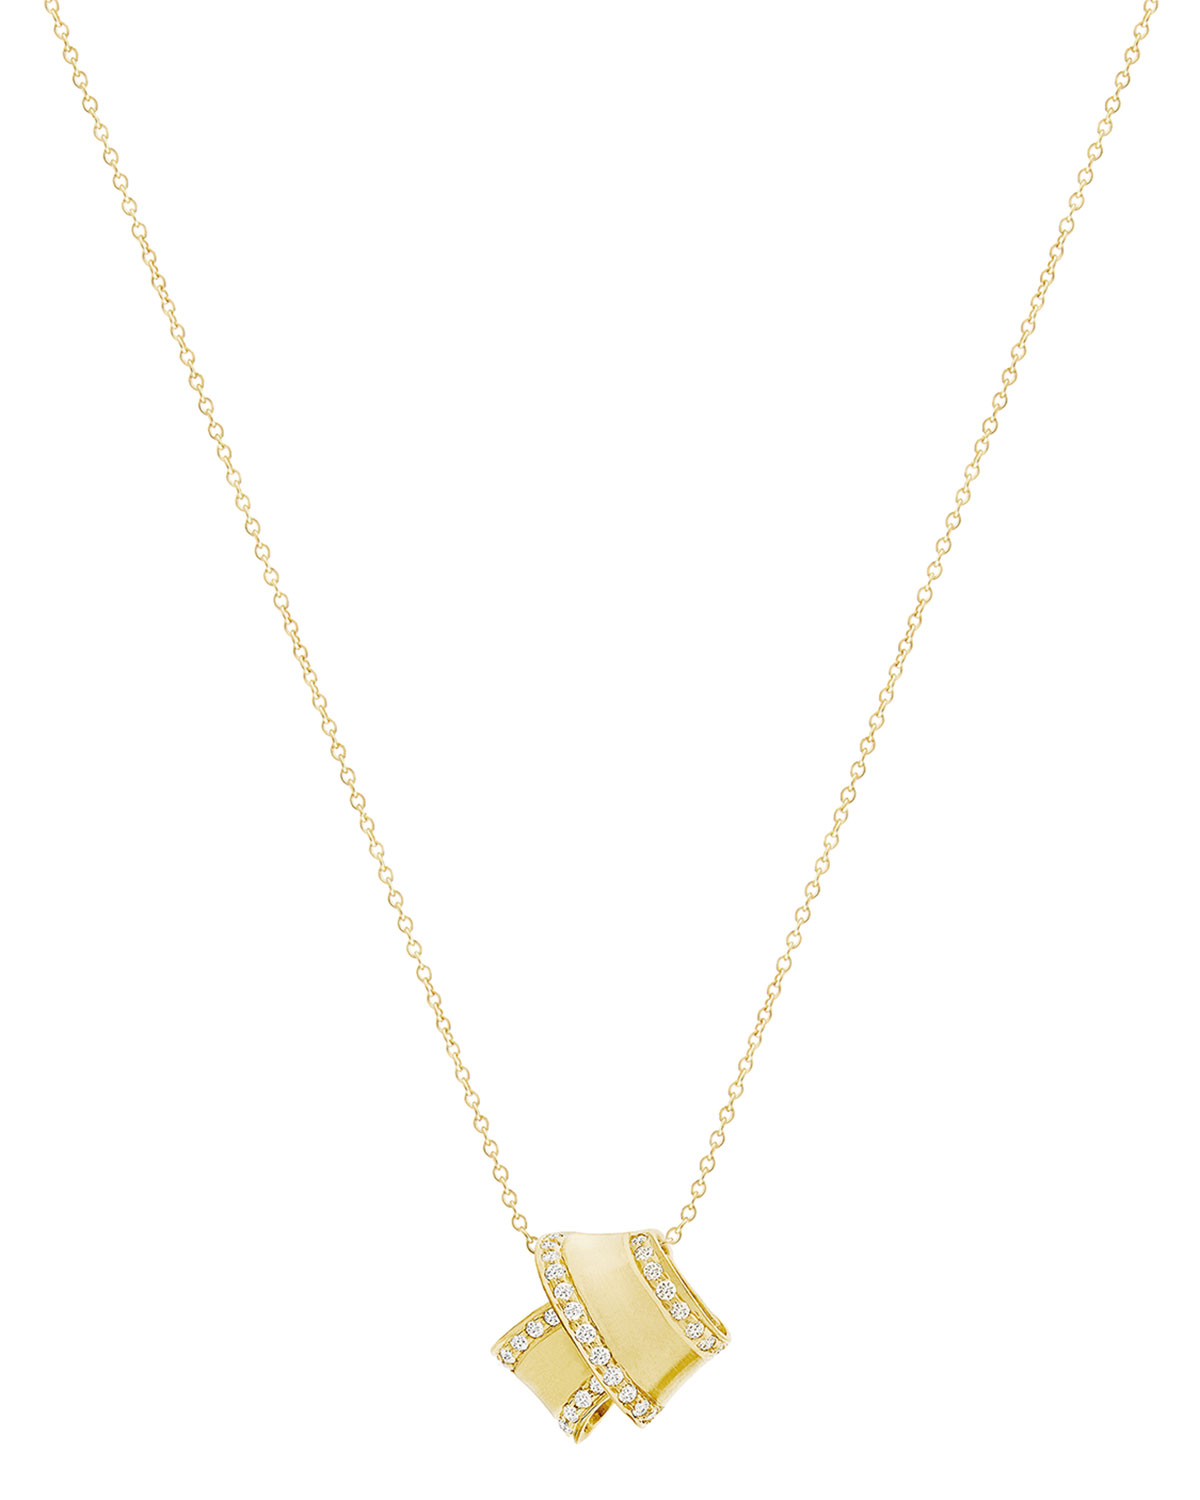 Carelle 18K YELLOW GOLD KNOT PENDANT NECKLACE WITH DIAMONDS